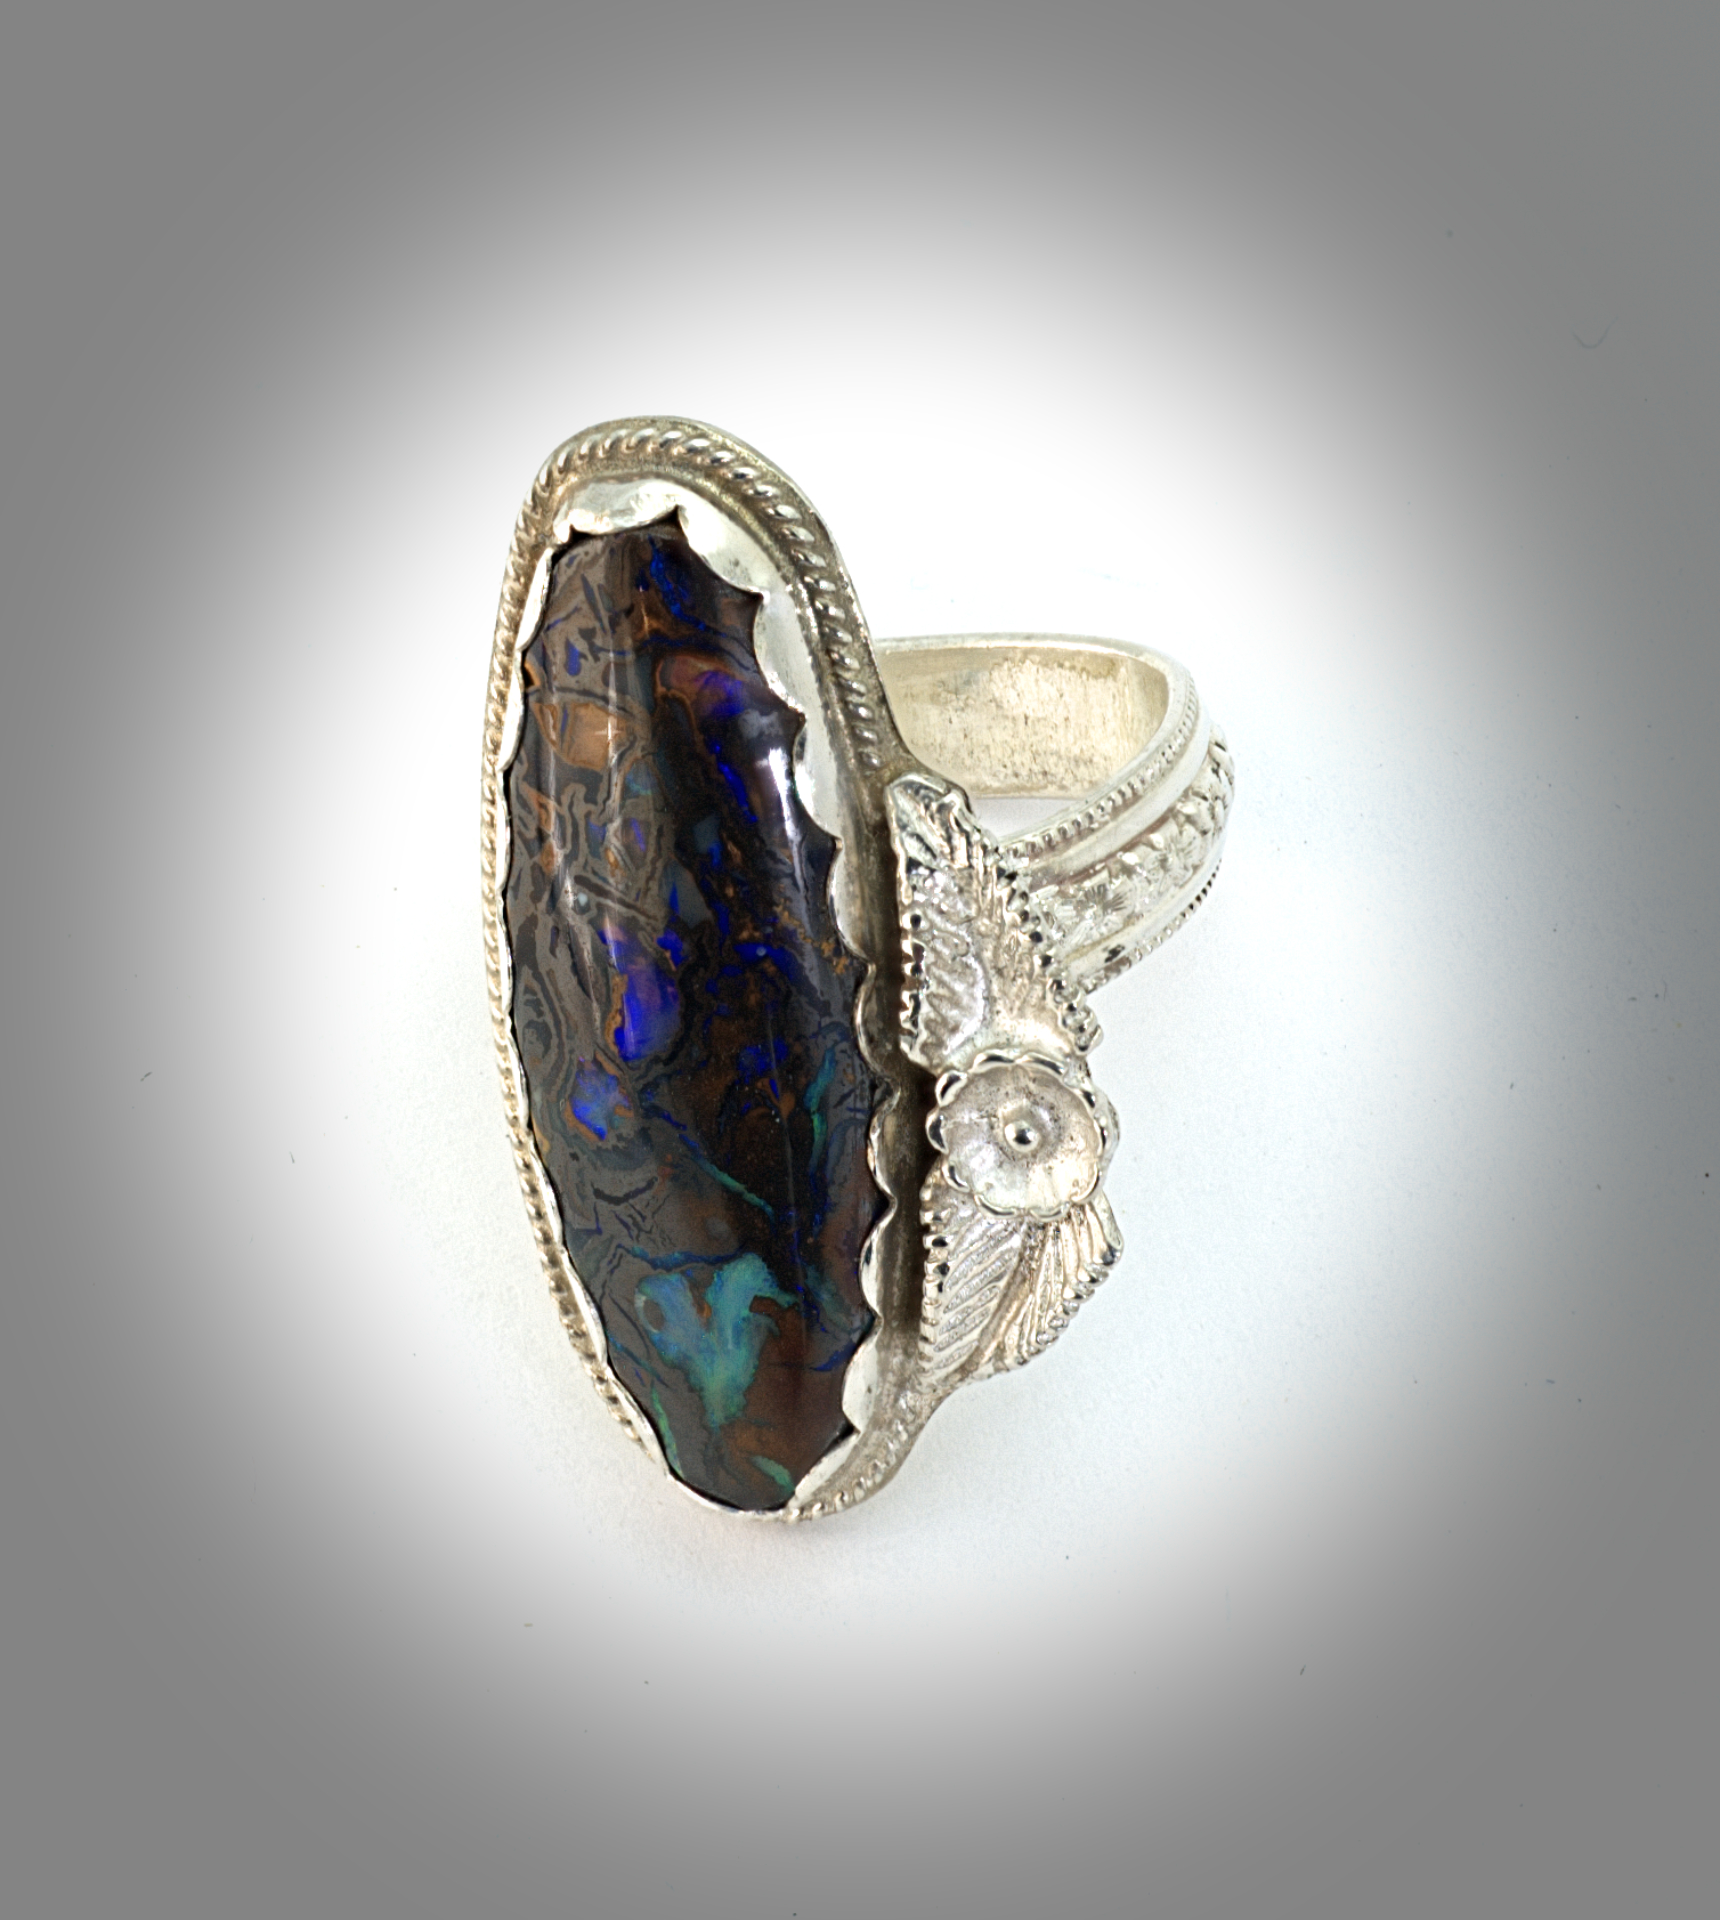 black ridge engagement ring boulder opal caymancode diamond and lightning rings